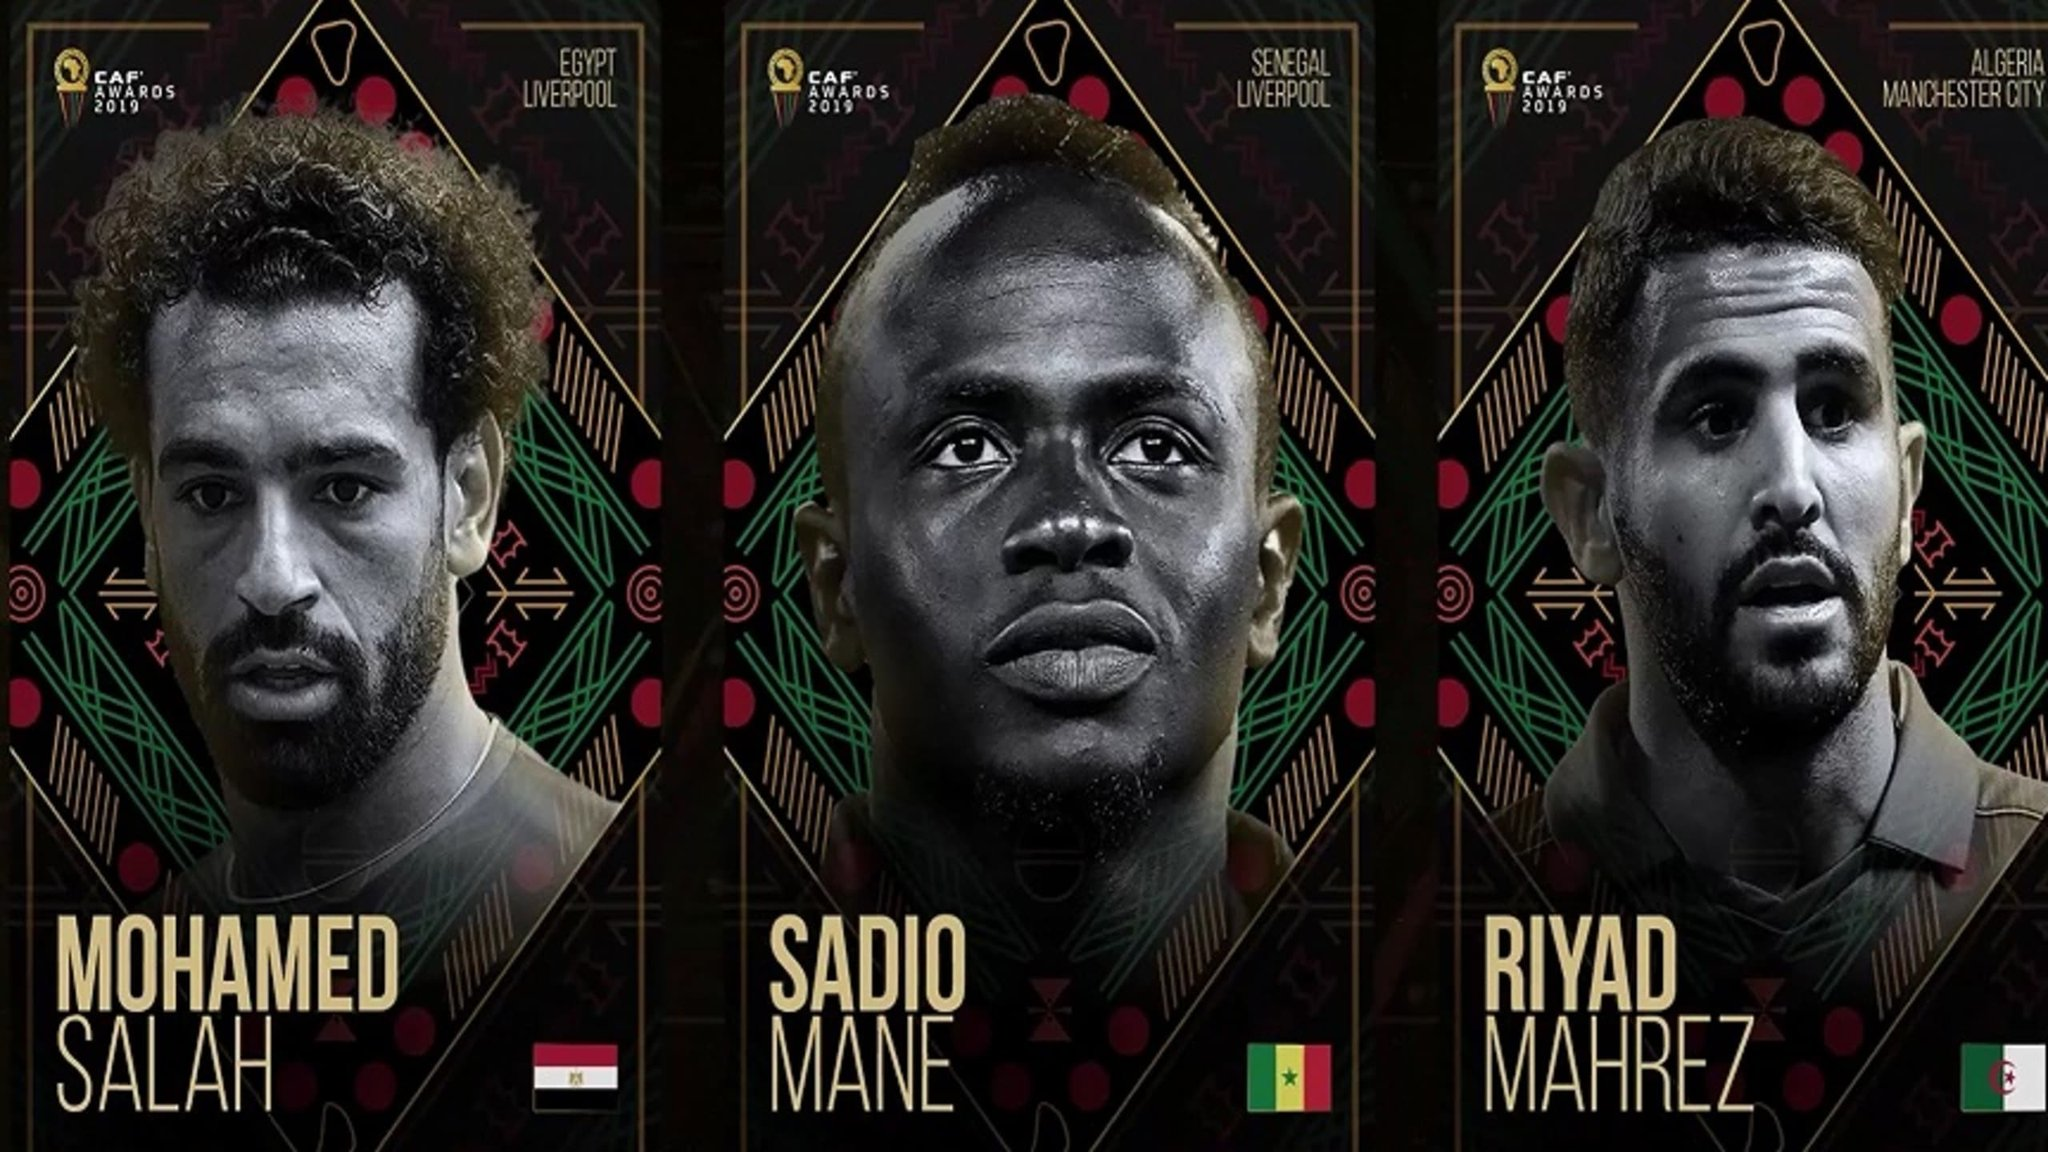 Mane, Salah and Mahrez Are The Final Three Contenders For 2019 African Player of the Year